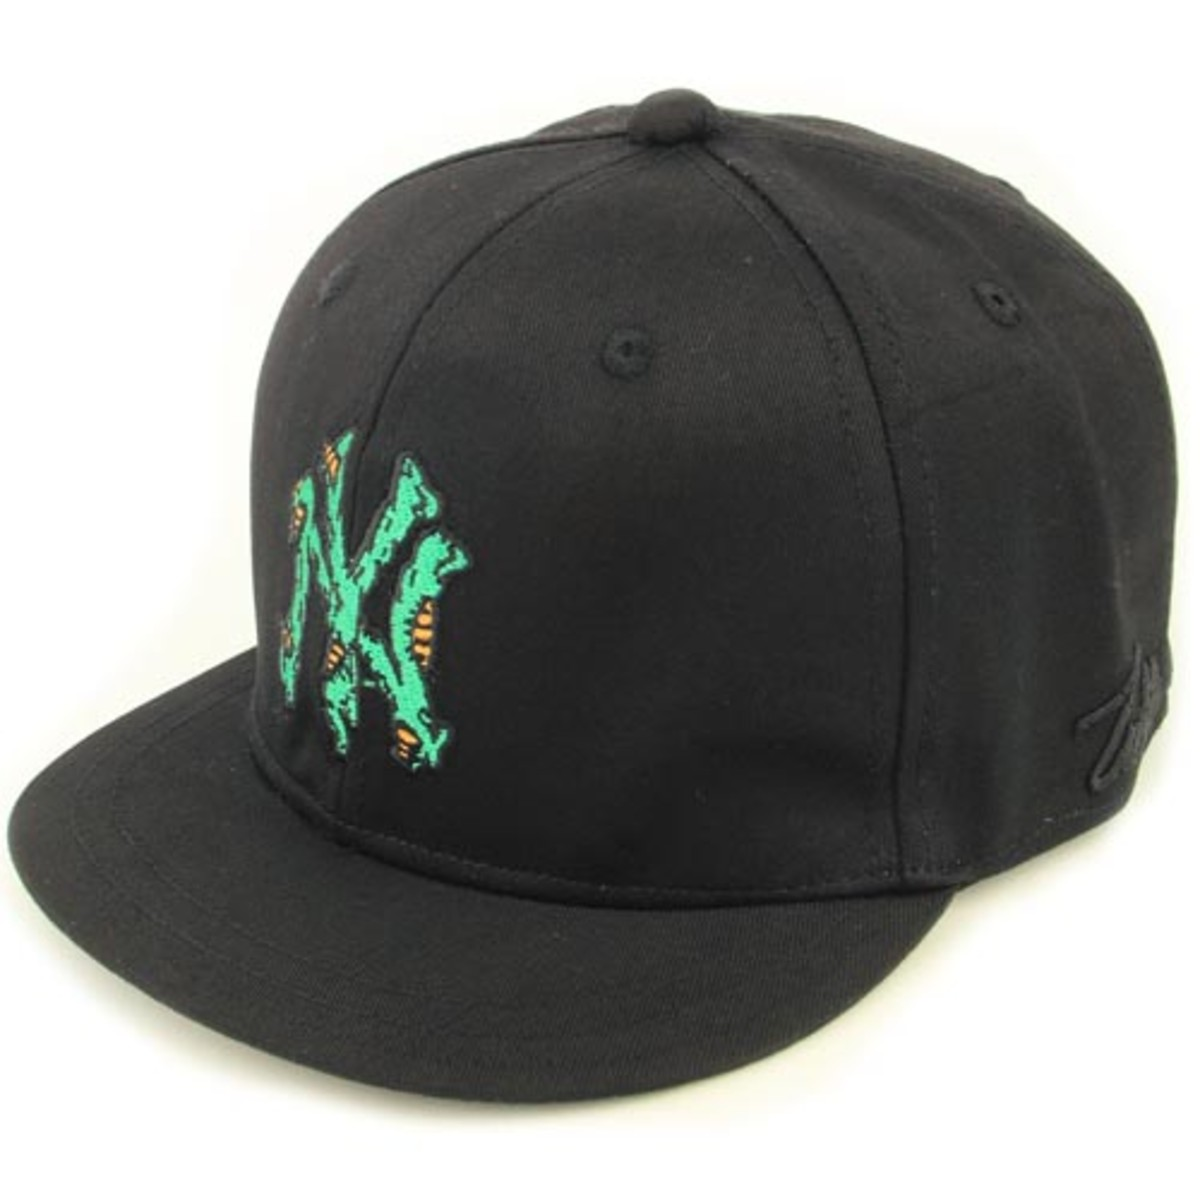 NYC Cap Black